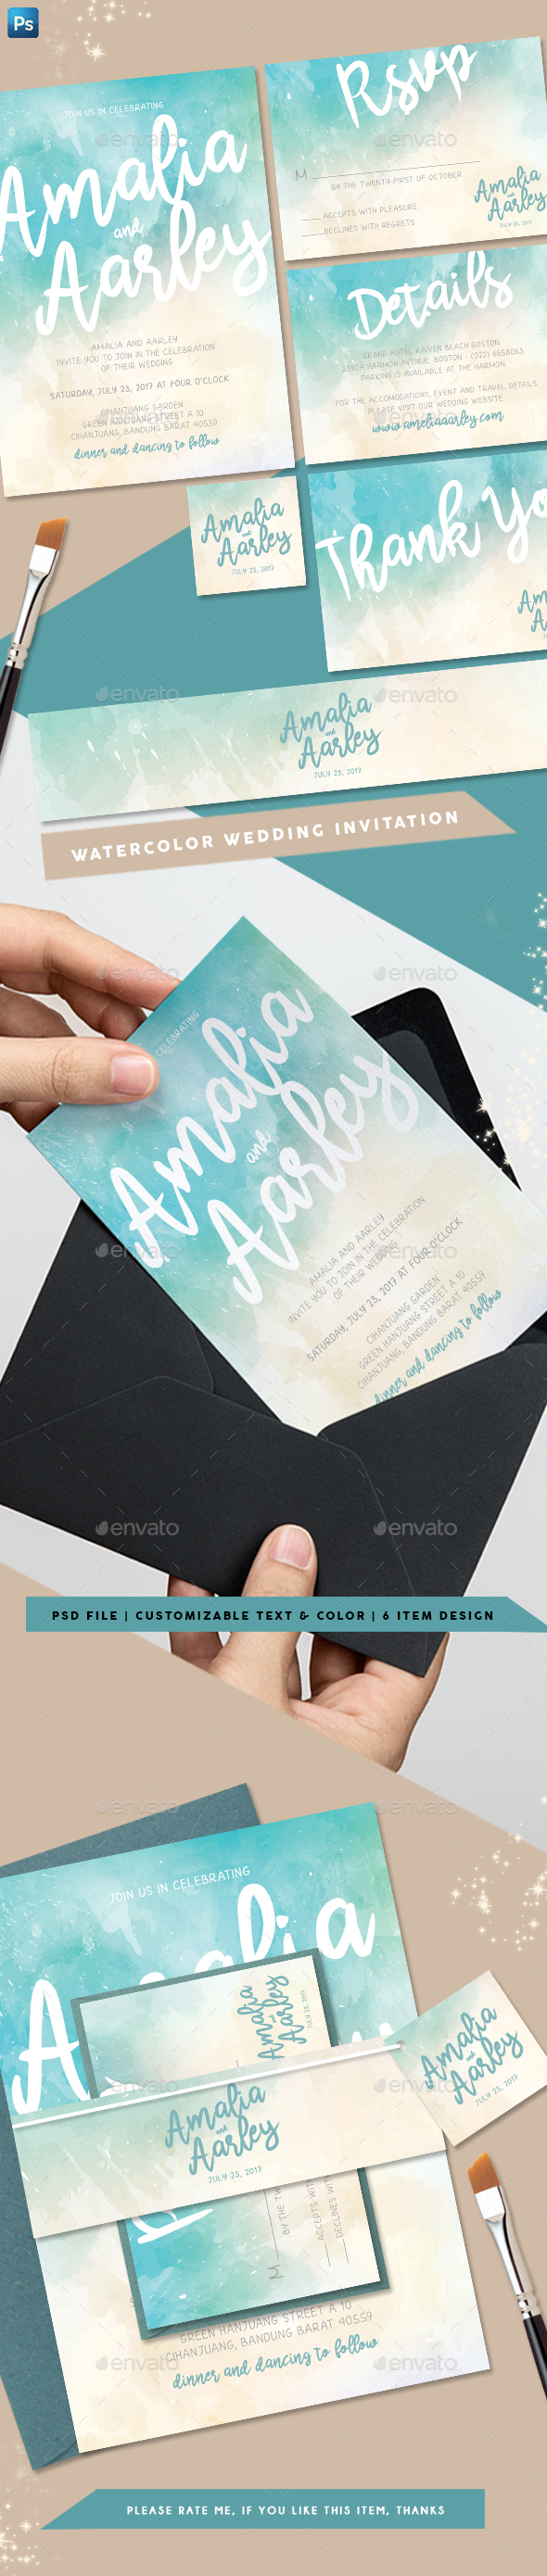 Watercolor Wedding Invitation - Weddings Cards & Invites